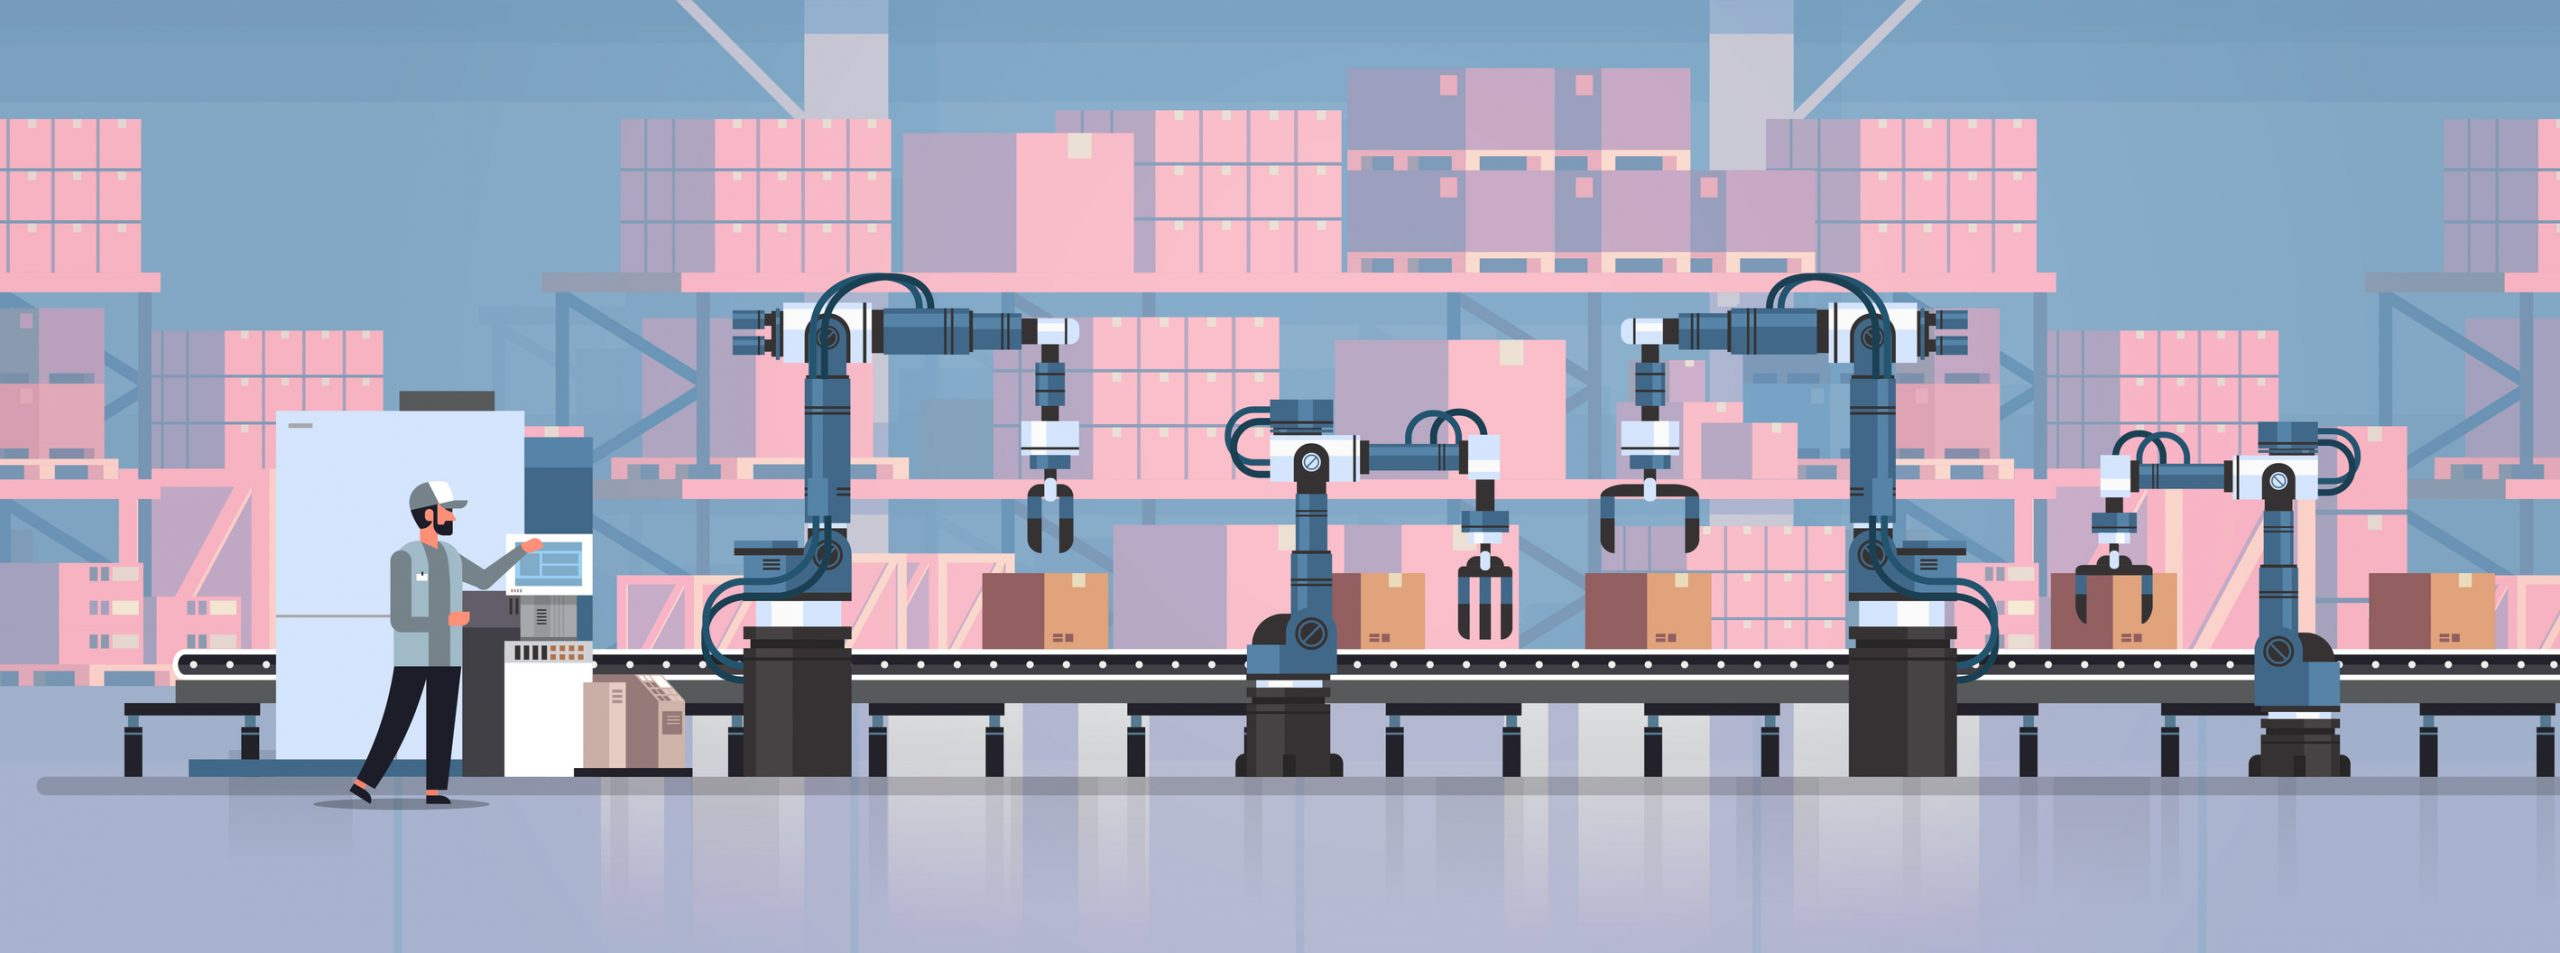 Putting the ROI in Robotics: Task-Specific Warehouse Automation